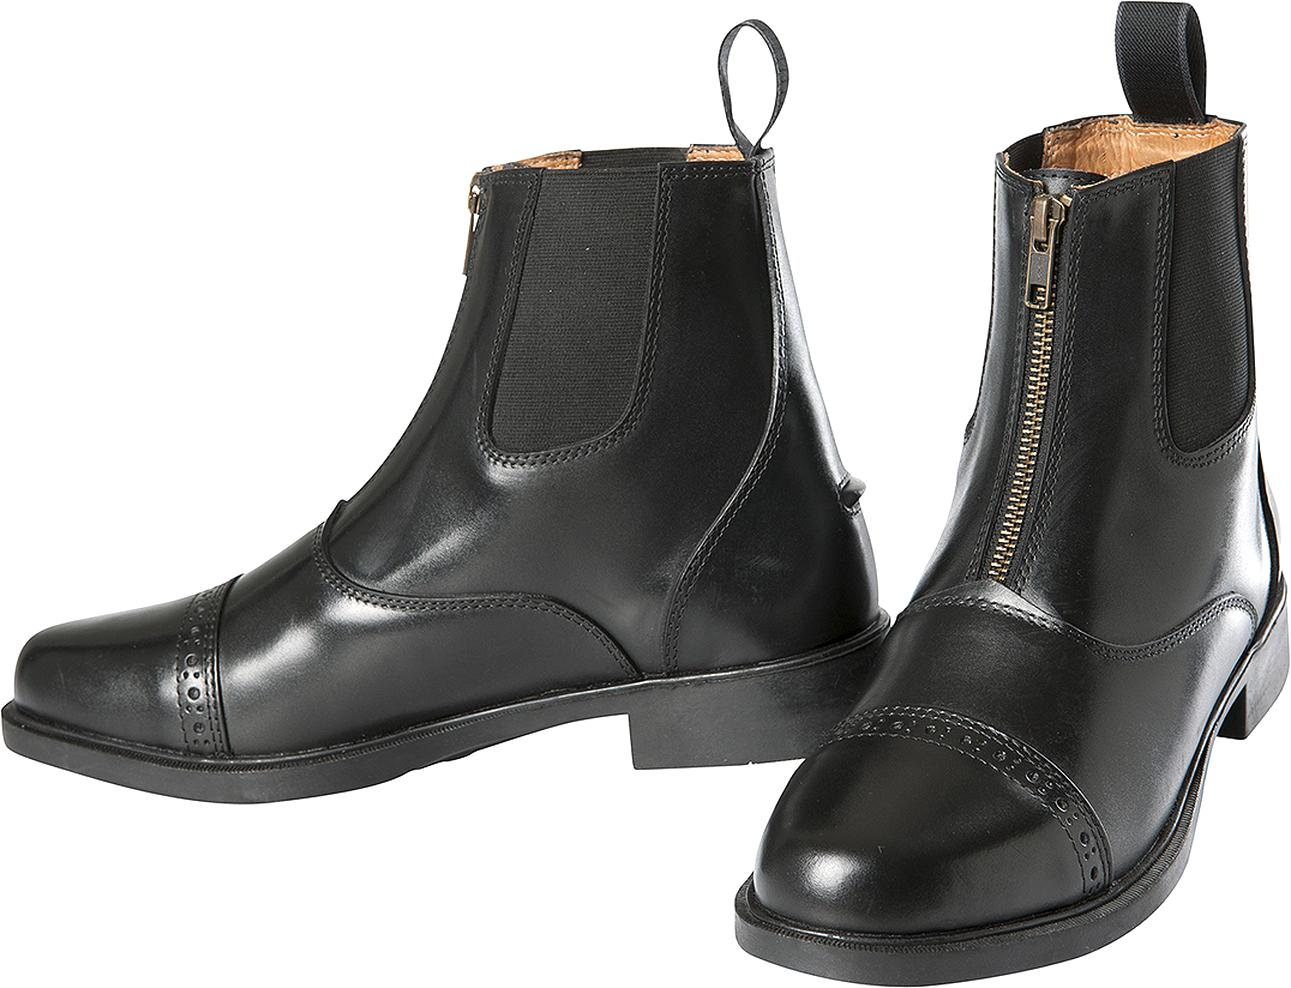 boots equitation cuir d'occasion